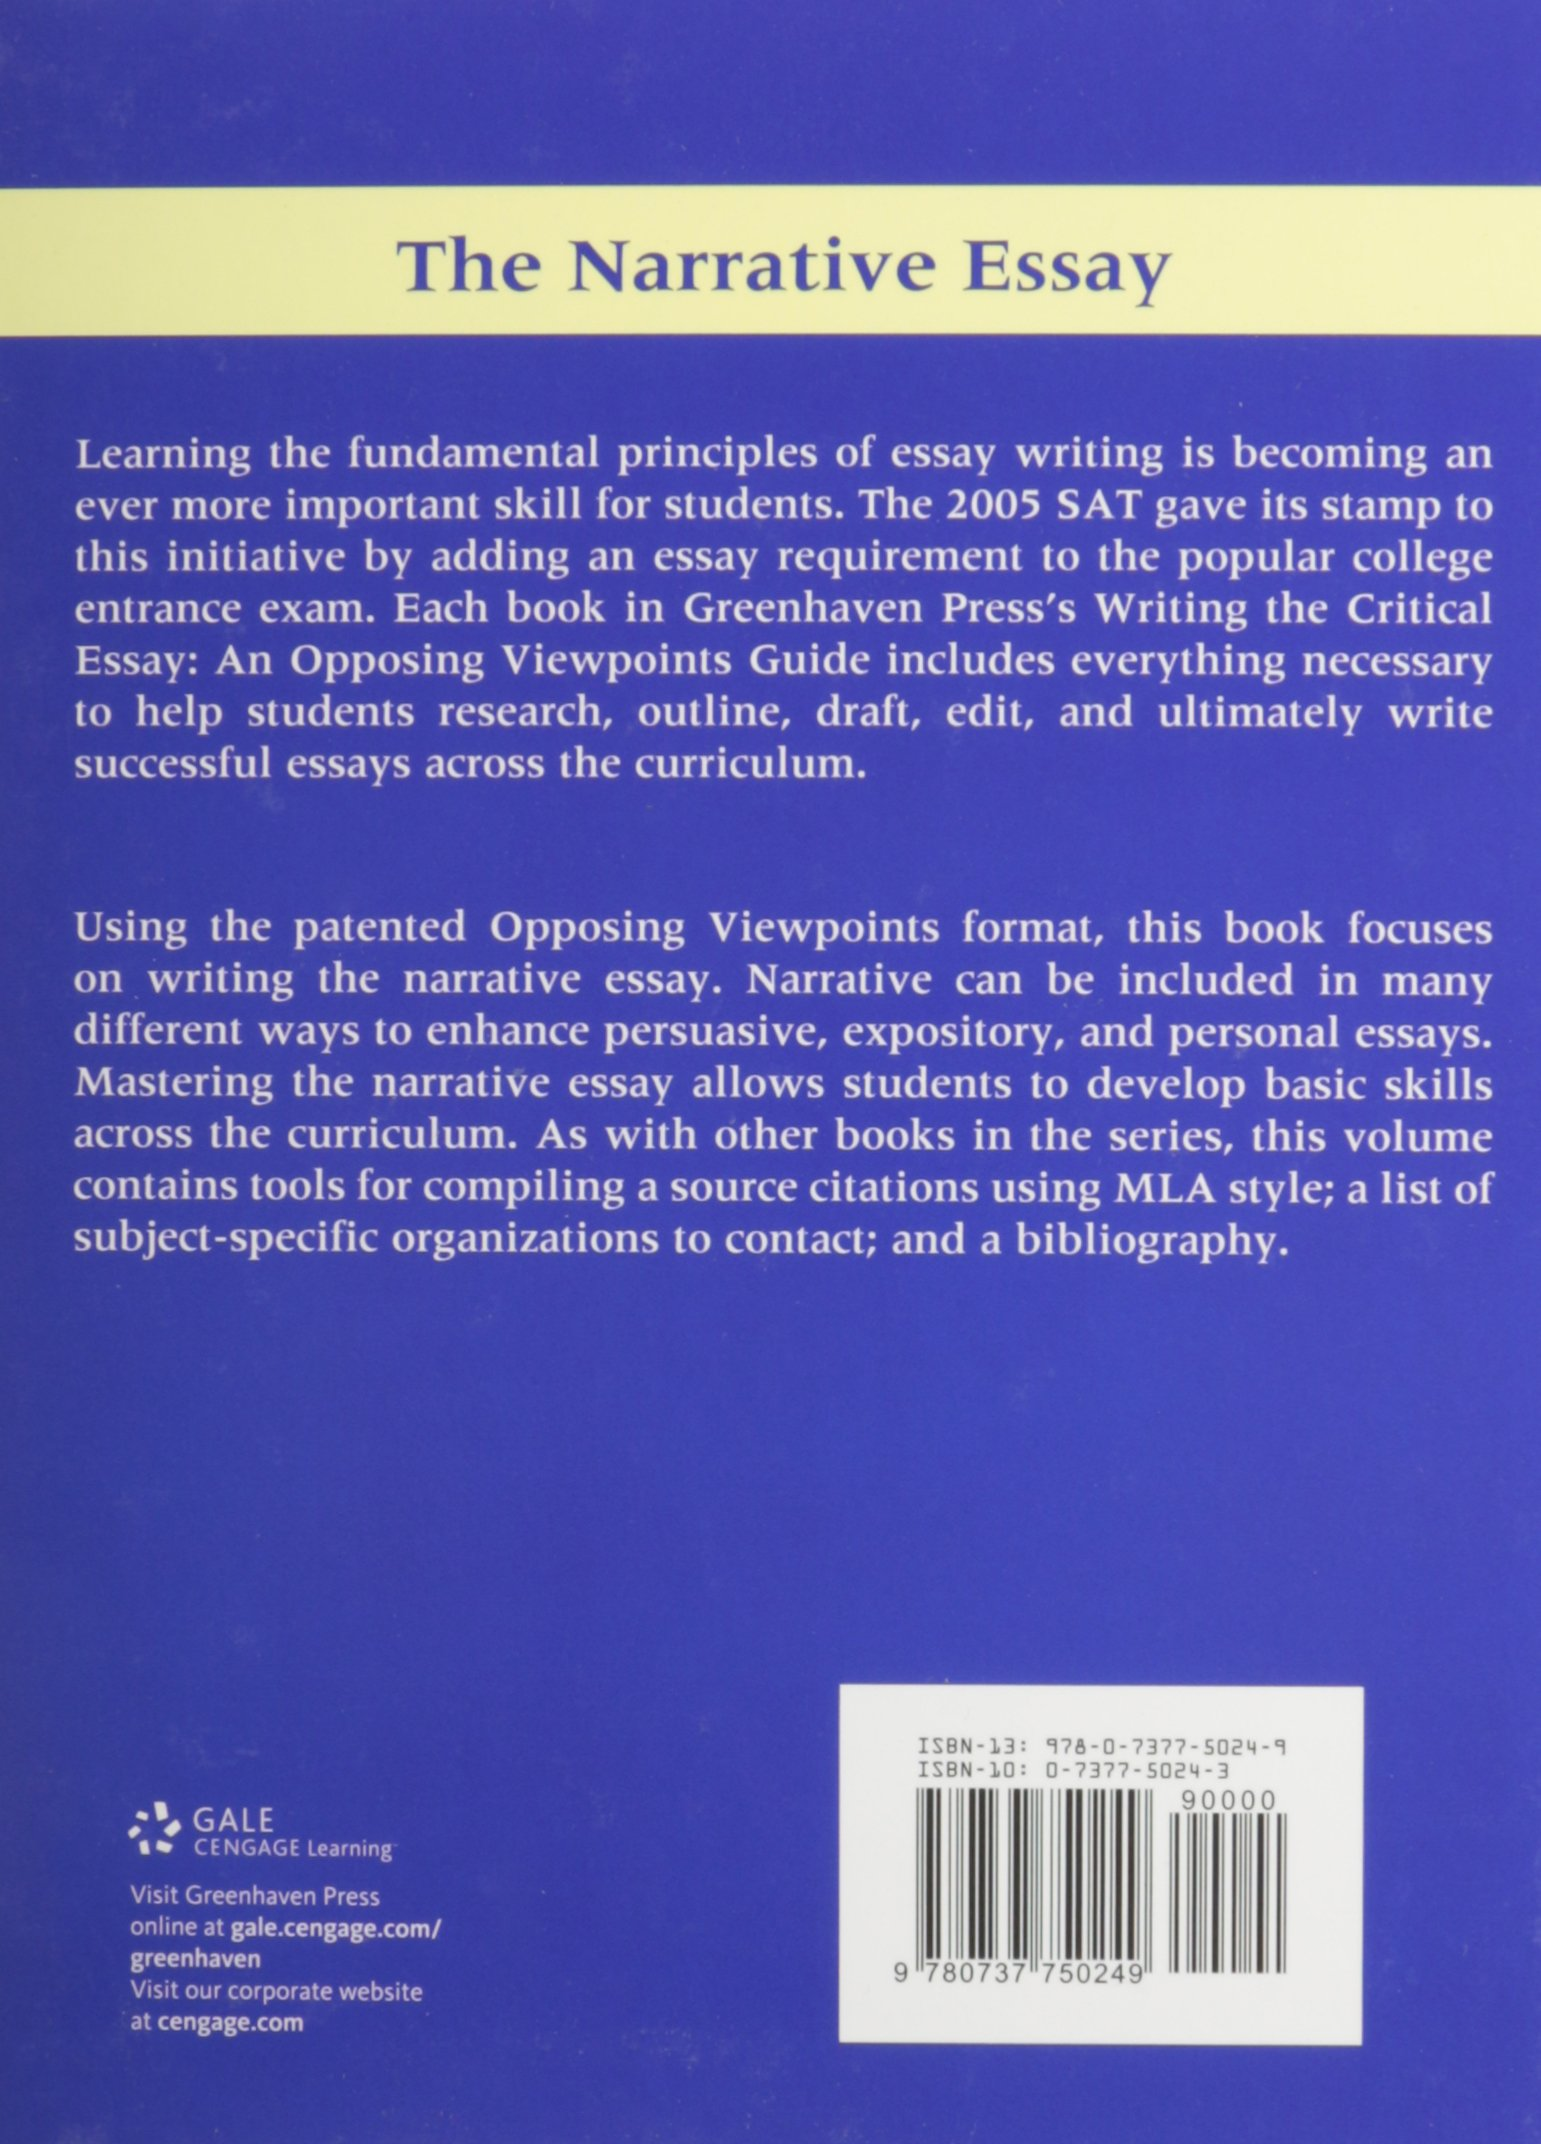 opposing viewpoints essay using gale s opposing viewpoints in  com bullying writing the critical essay com bullying writing the critical essay 9780737750249 lauri s friedman